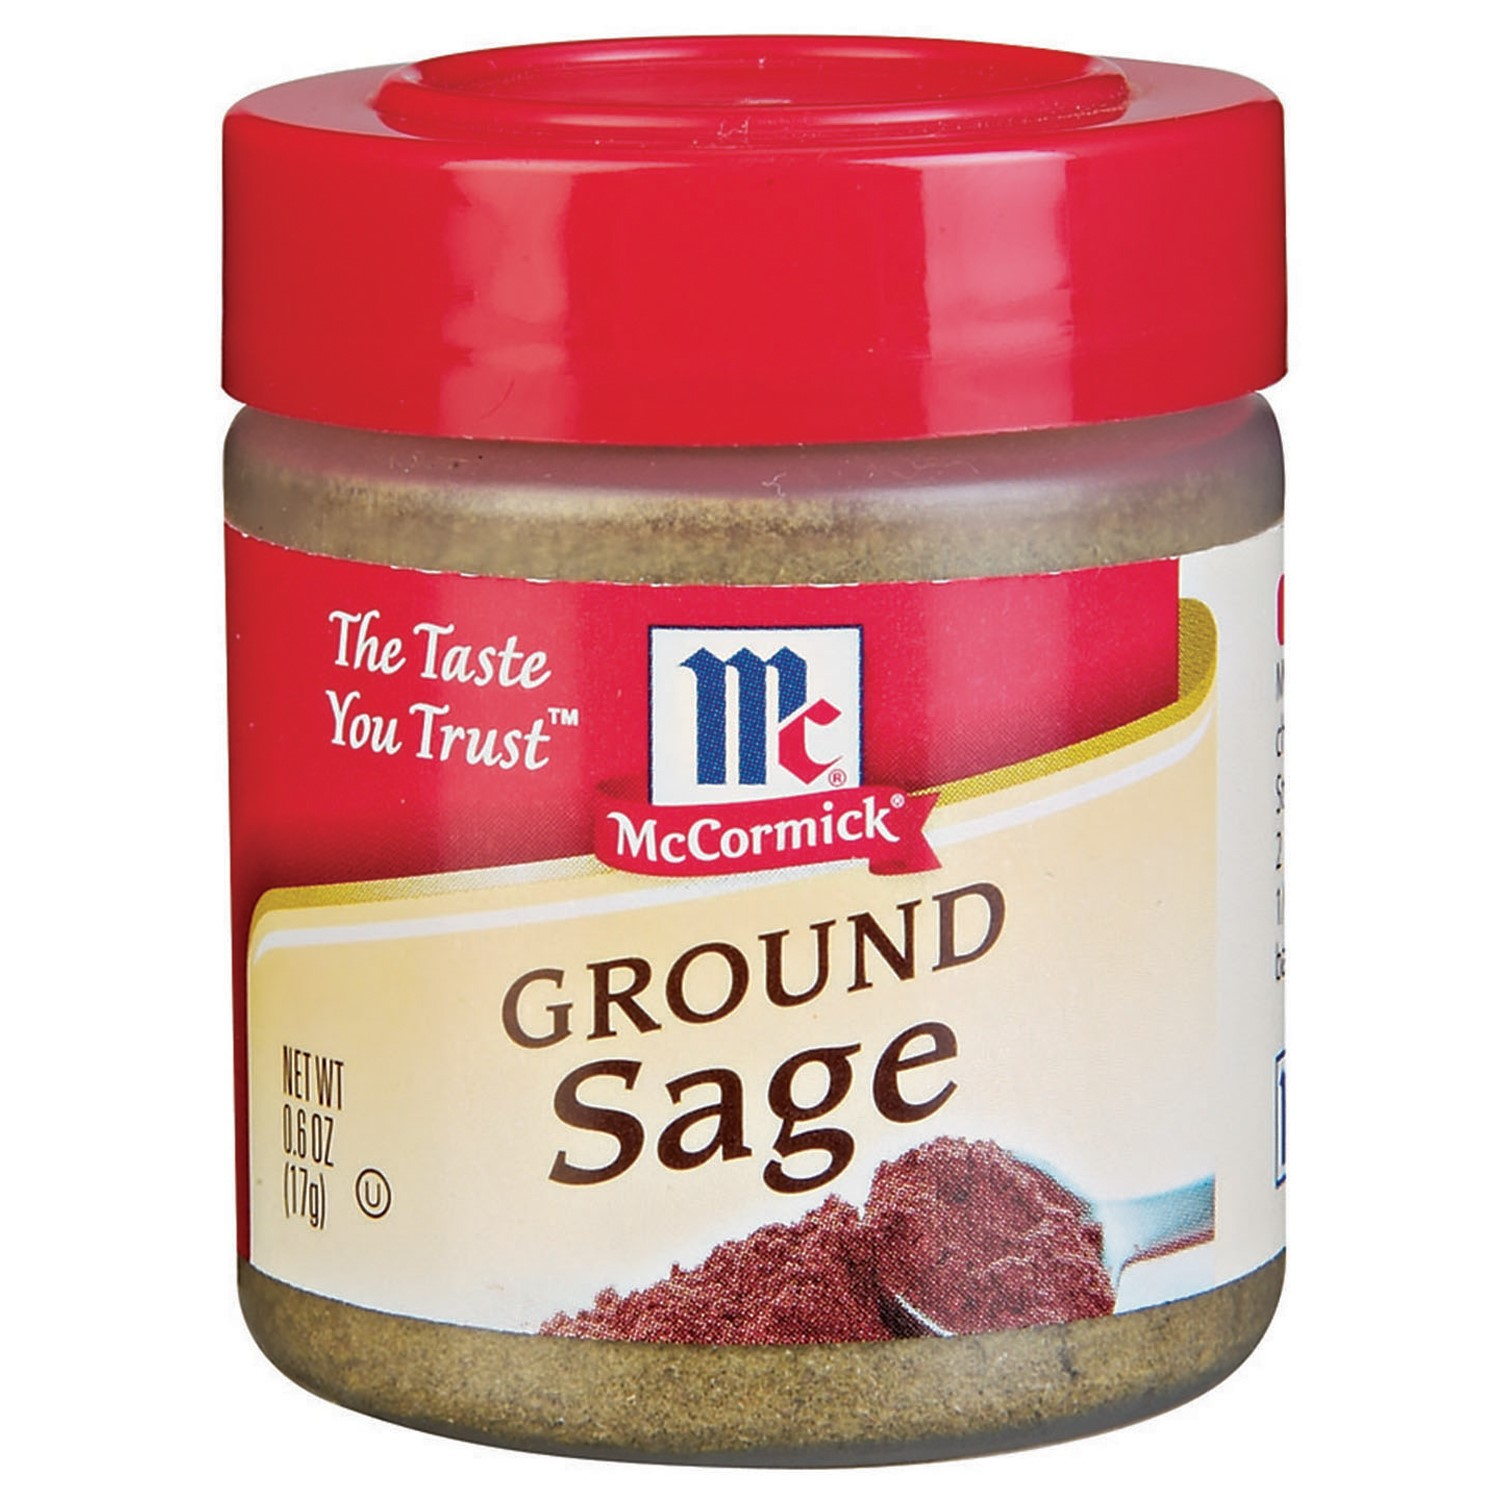 McCormick Specialty Herbs And Spices Ground Sage, 0.6 Oz